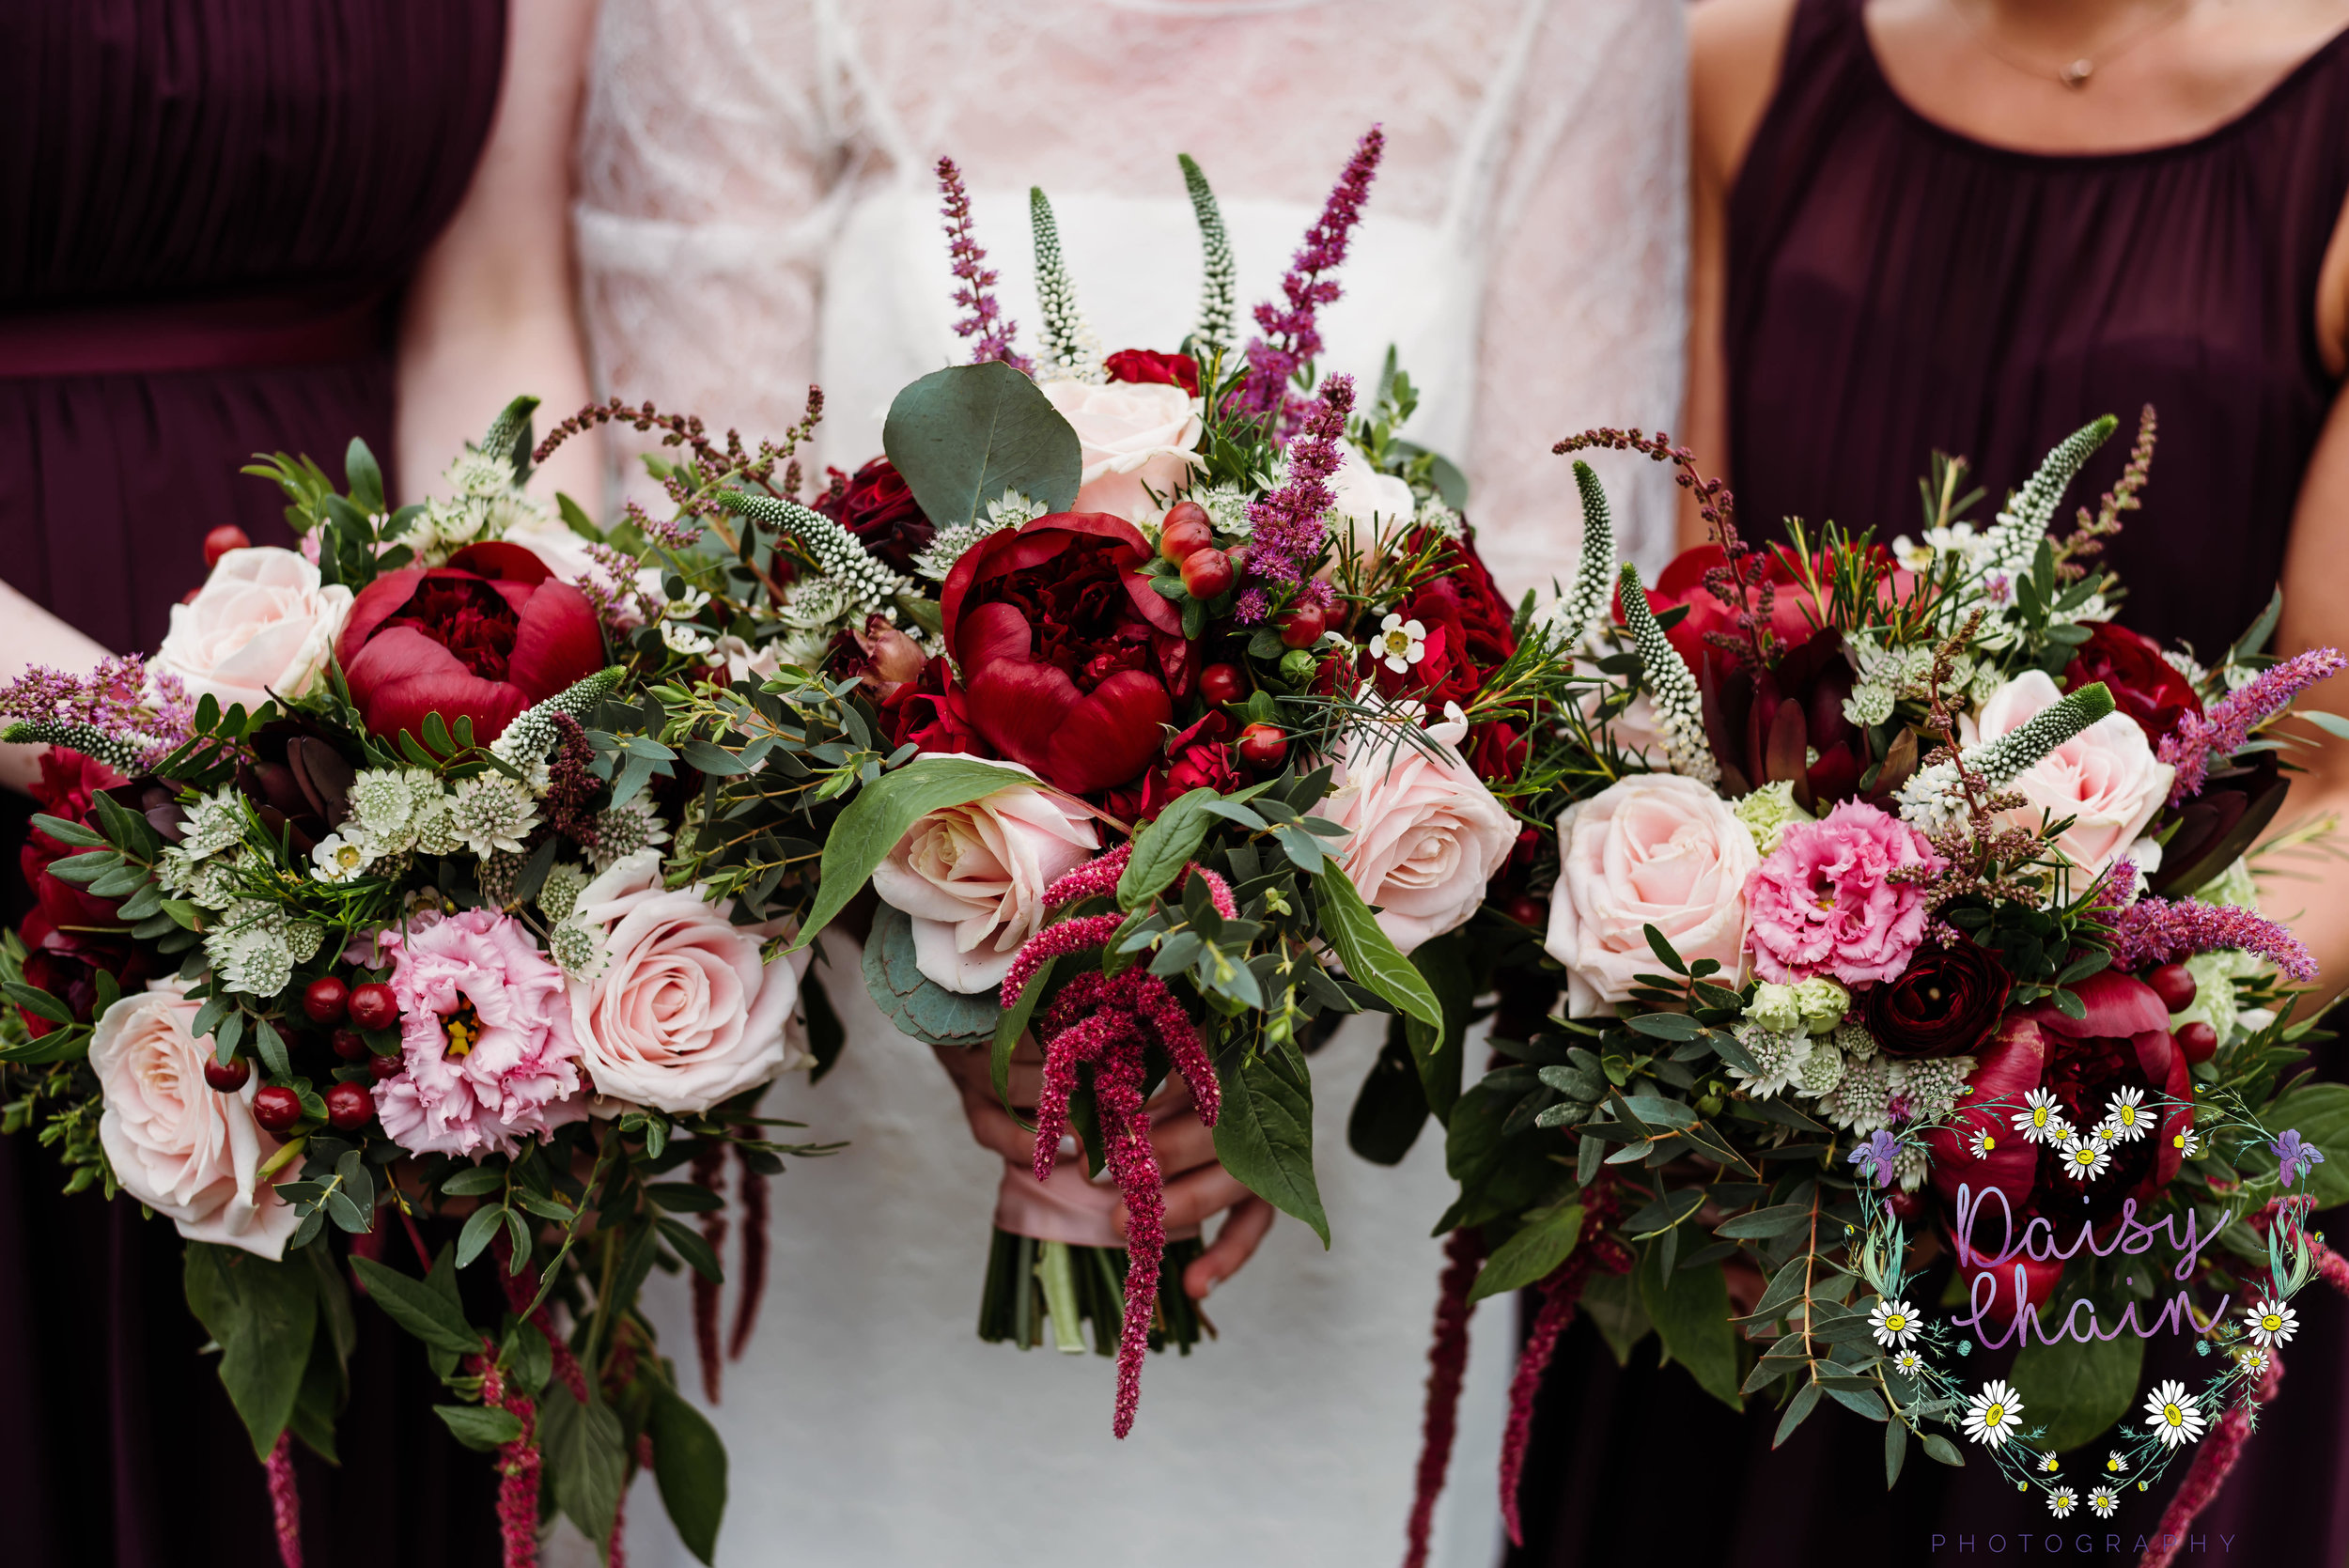 Rustic wedding bouquets - Accrington